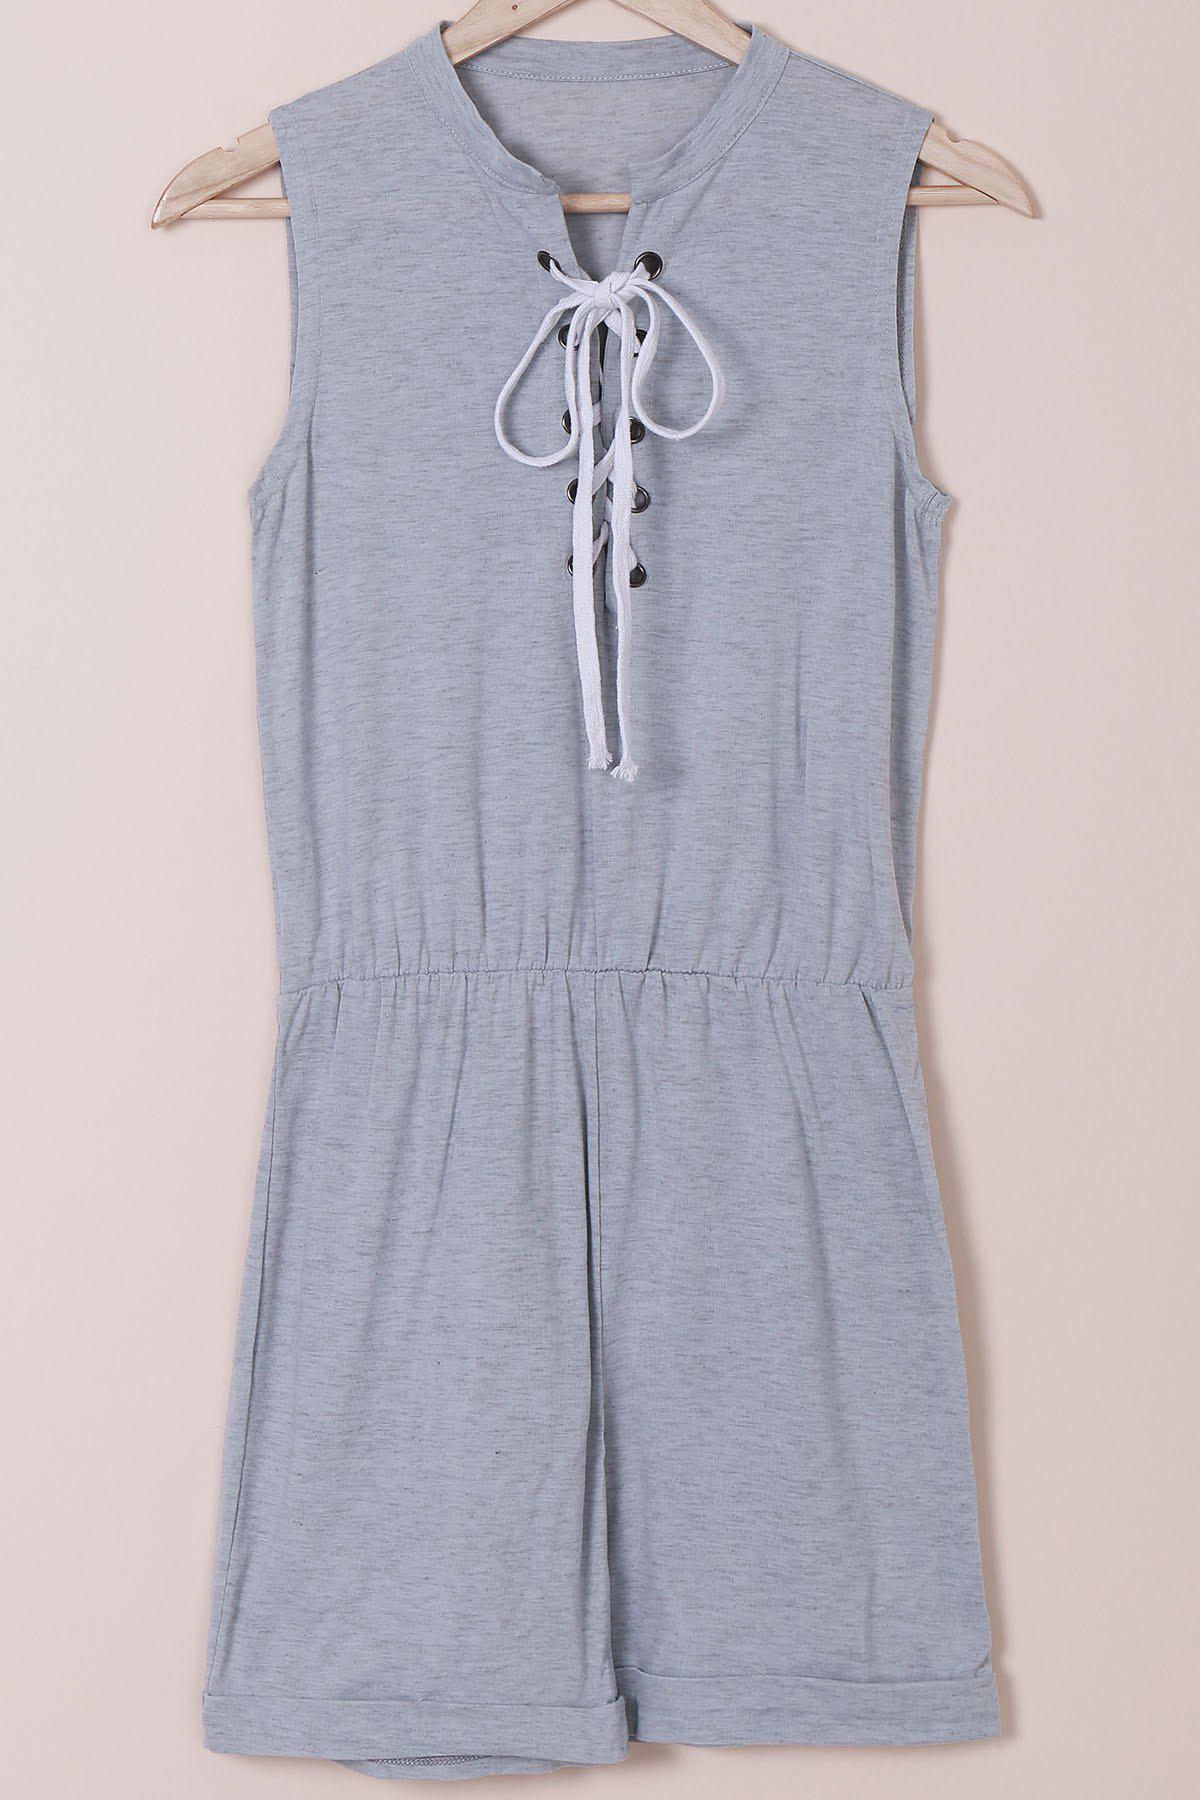 Casual Style Sleeveless Jewel Neck Lace-Up Women's Gray Romper - GRAY M